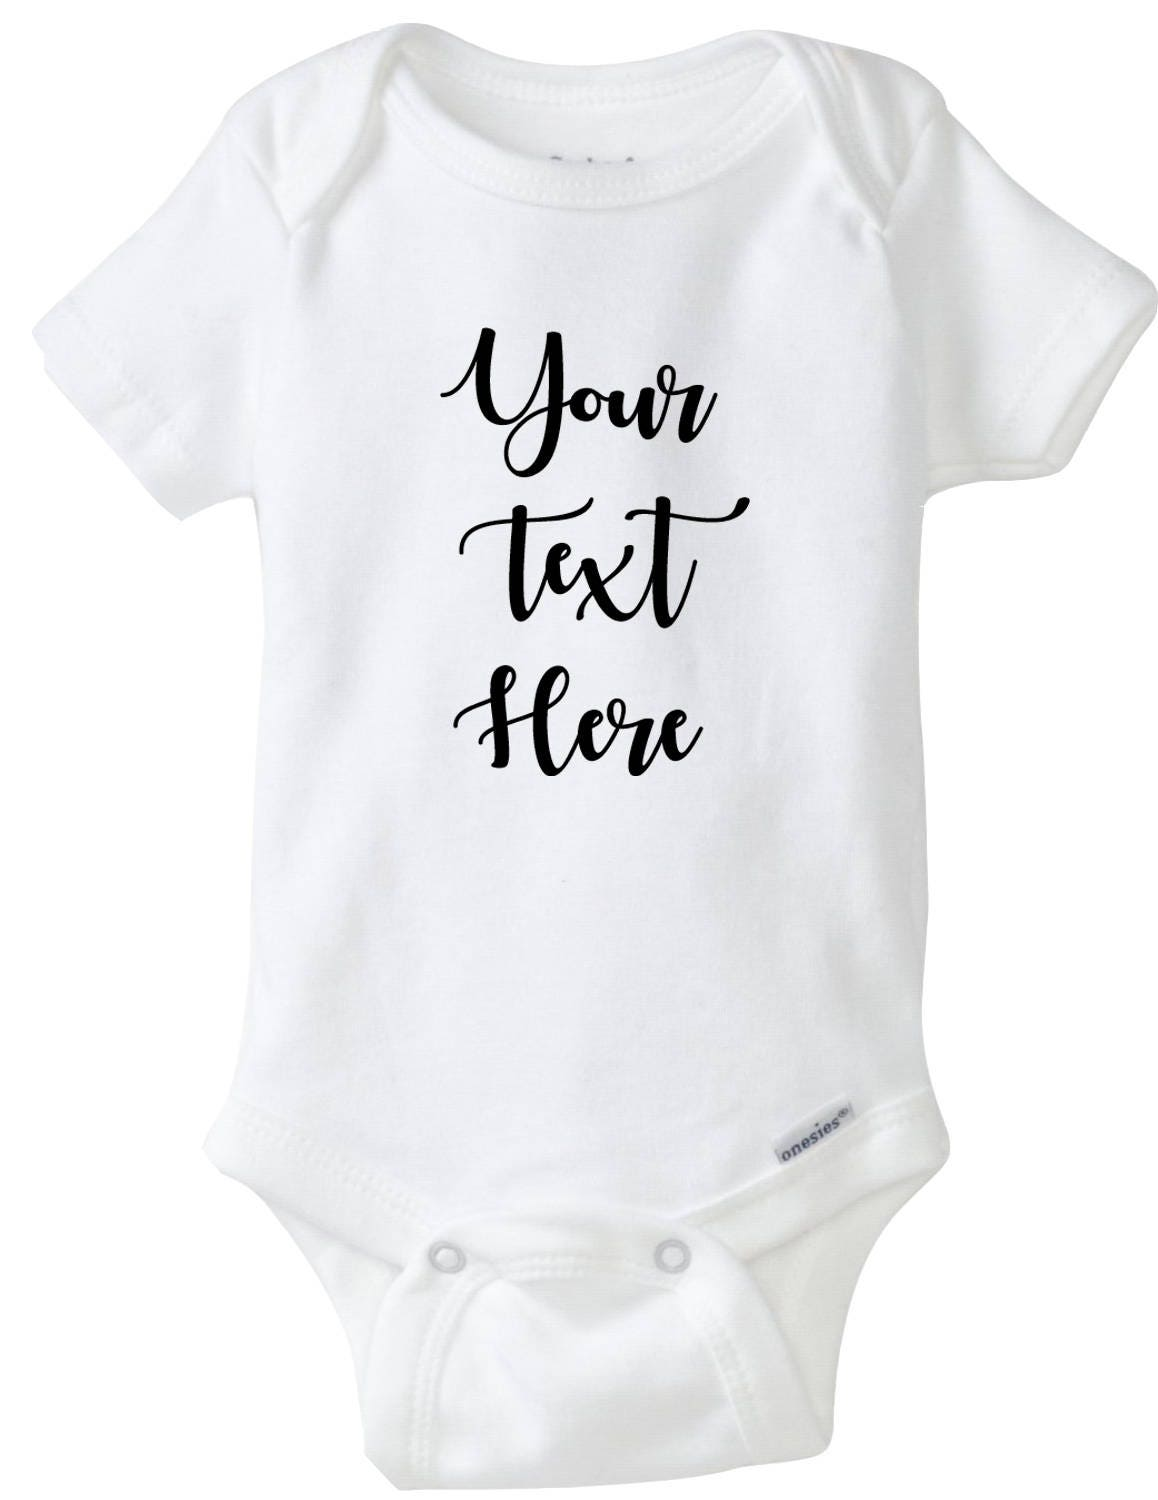 cc5cdddc74e02 Custom Baby Onesies®, Your Design Here, Personalized Baby Outfit